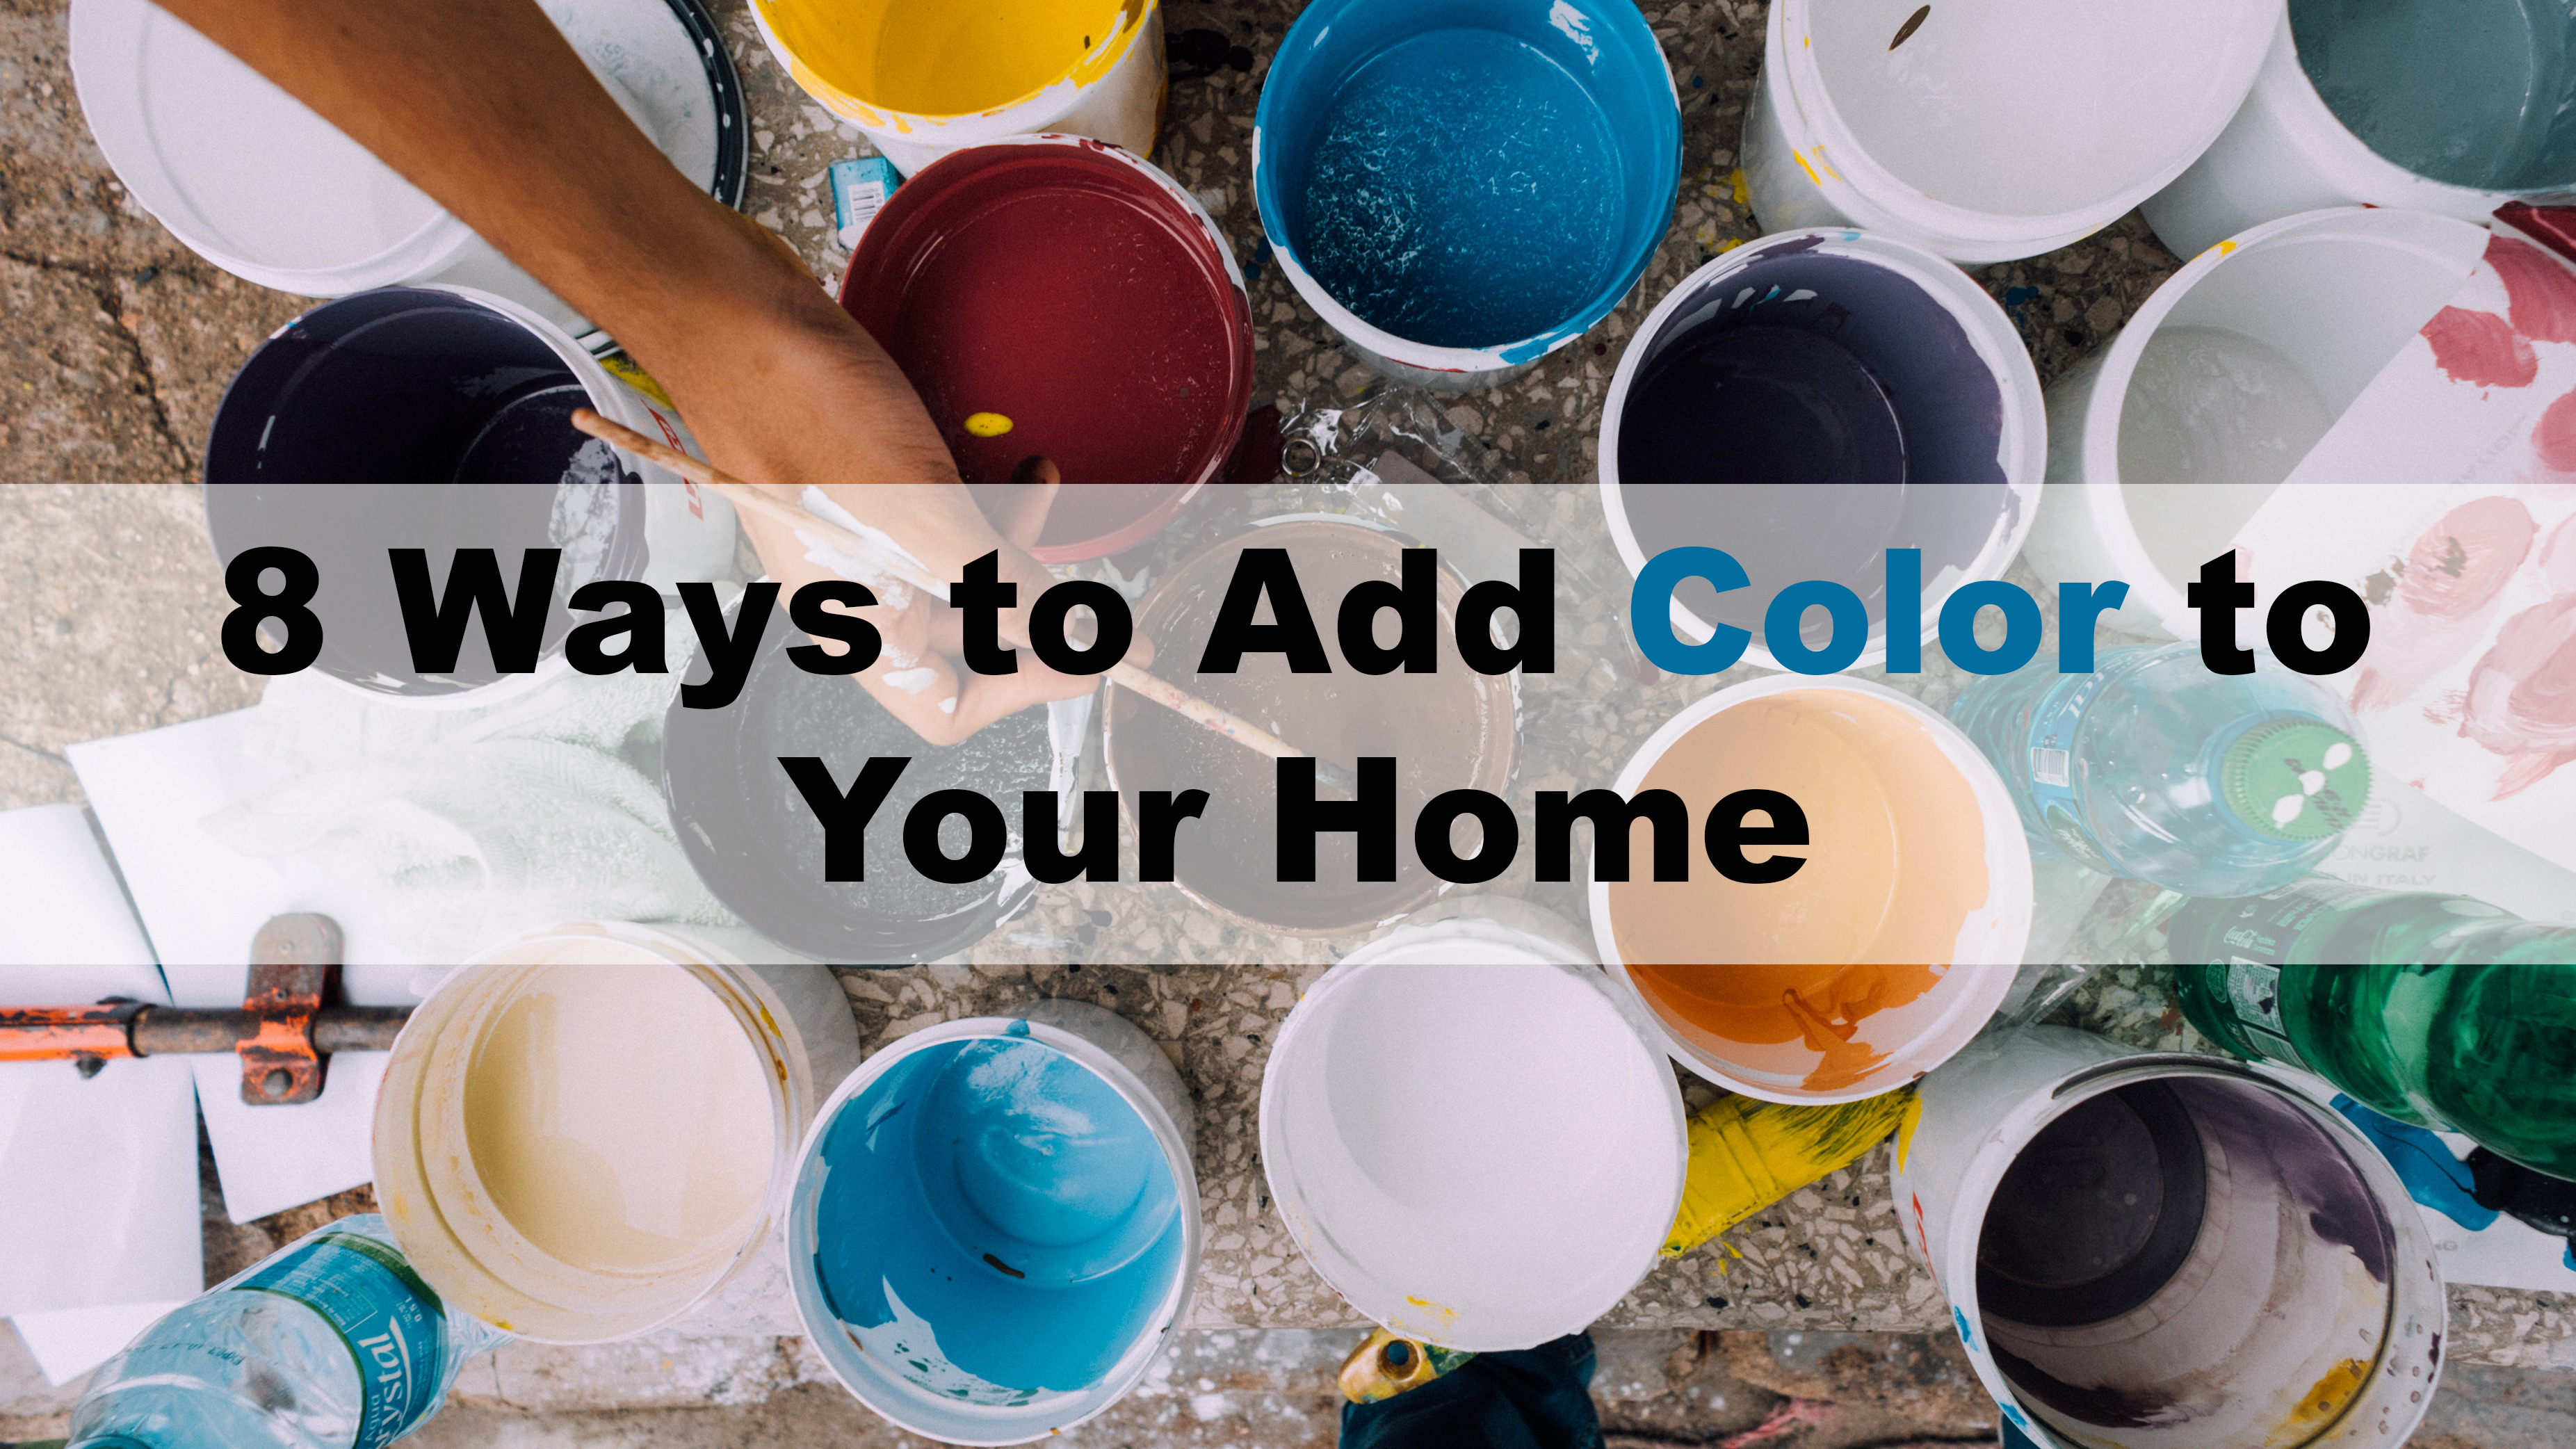 8 Ways to Add Color to Your Home